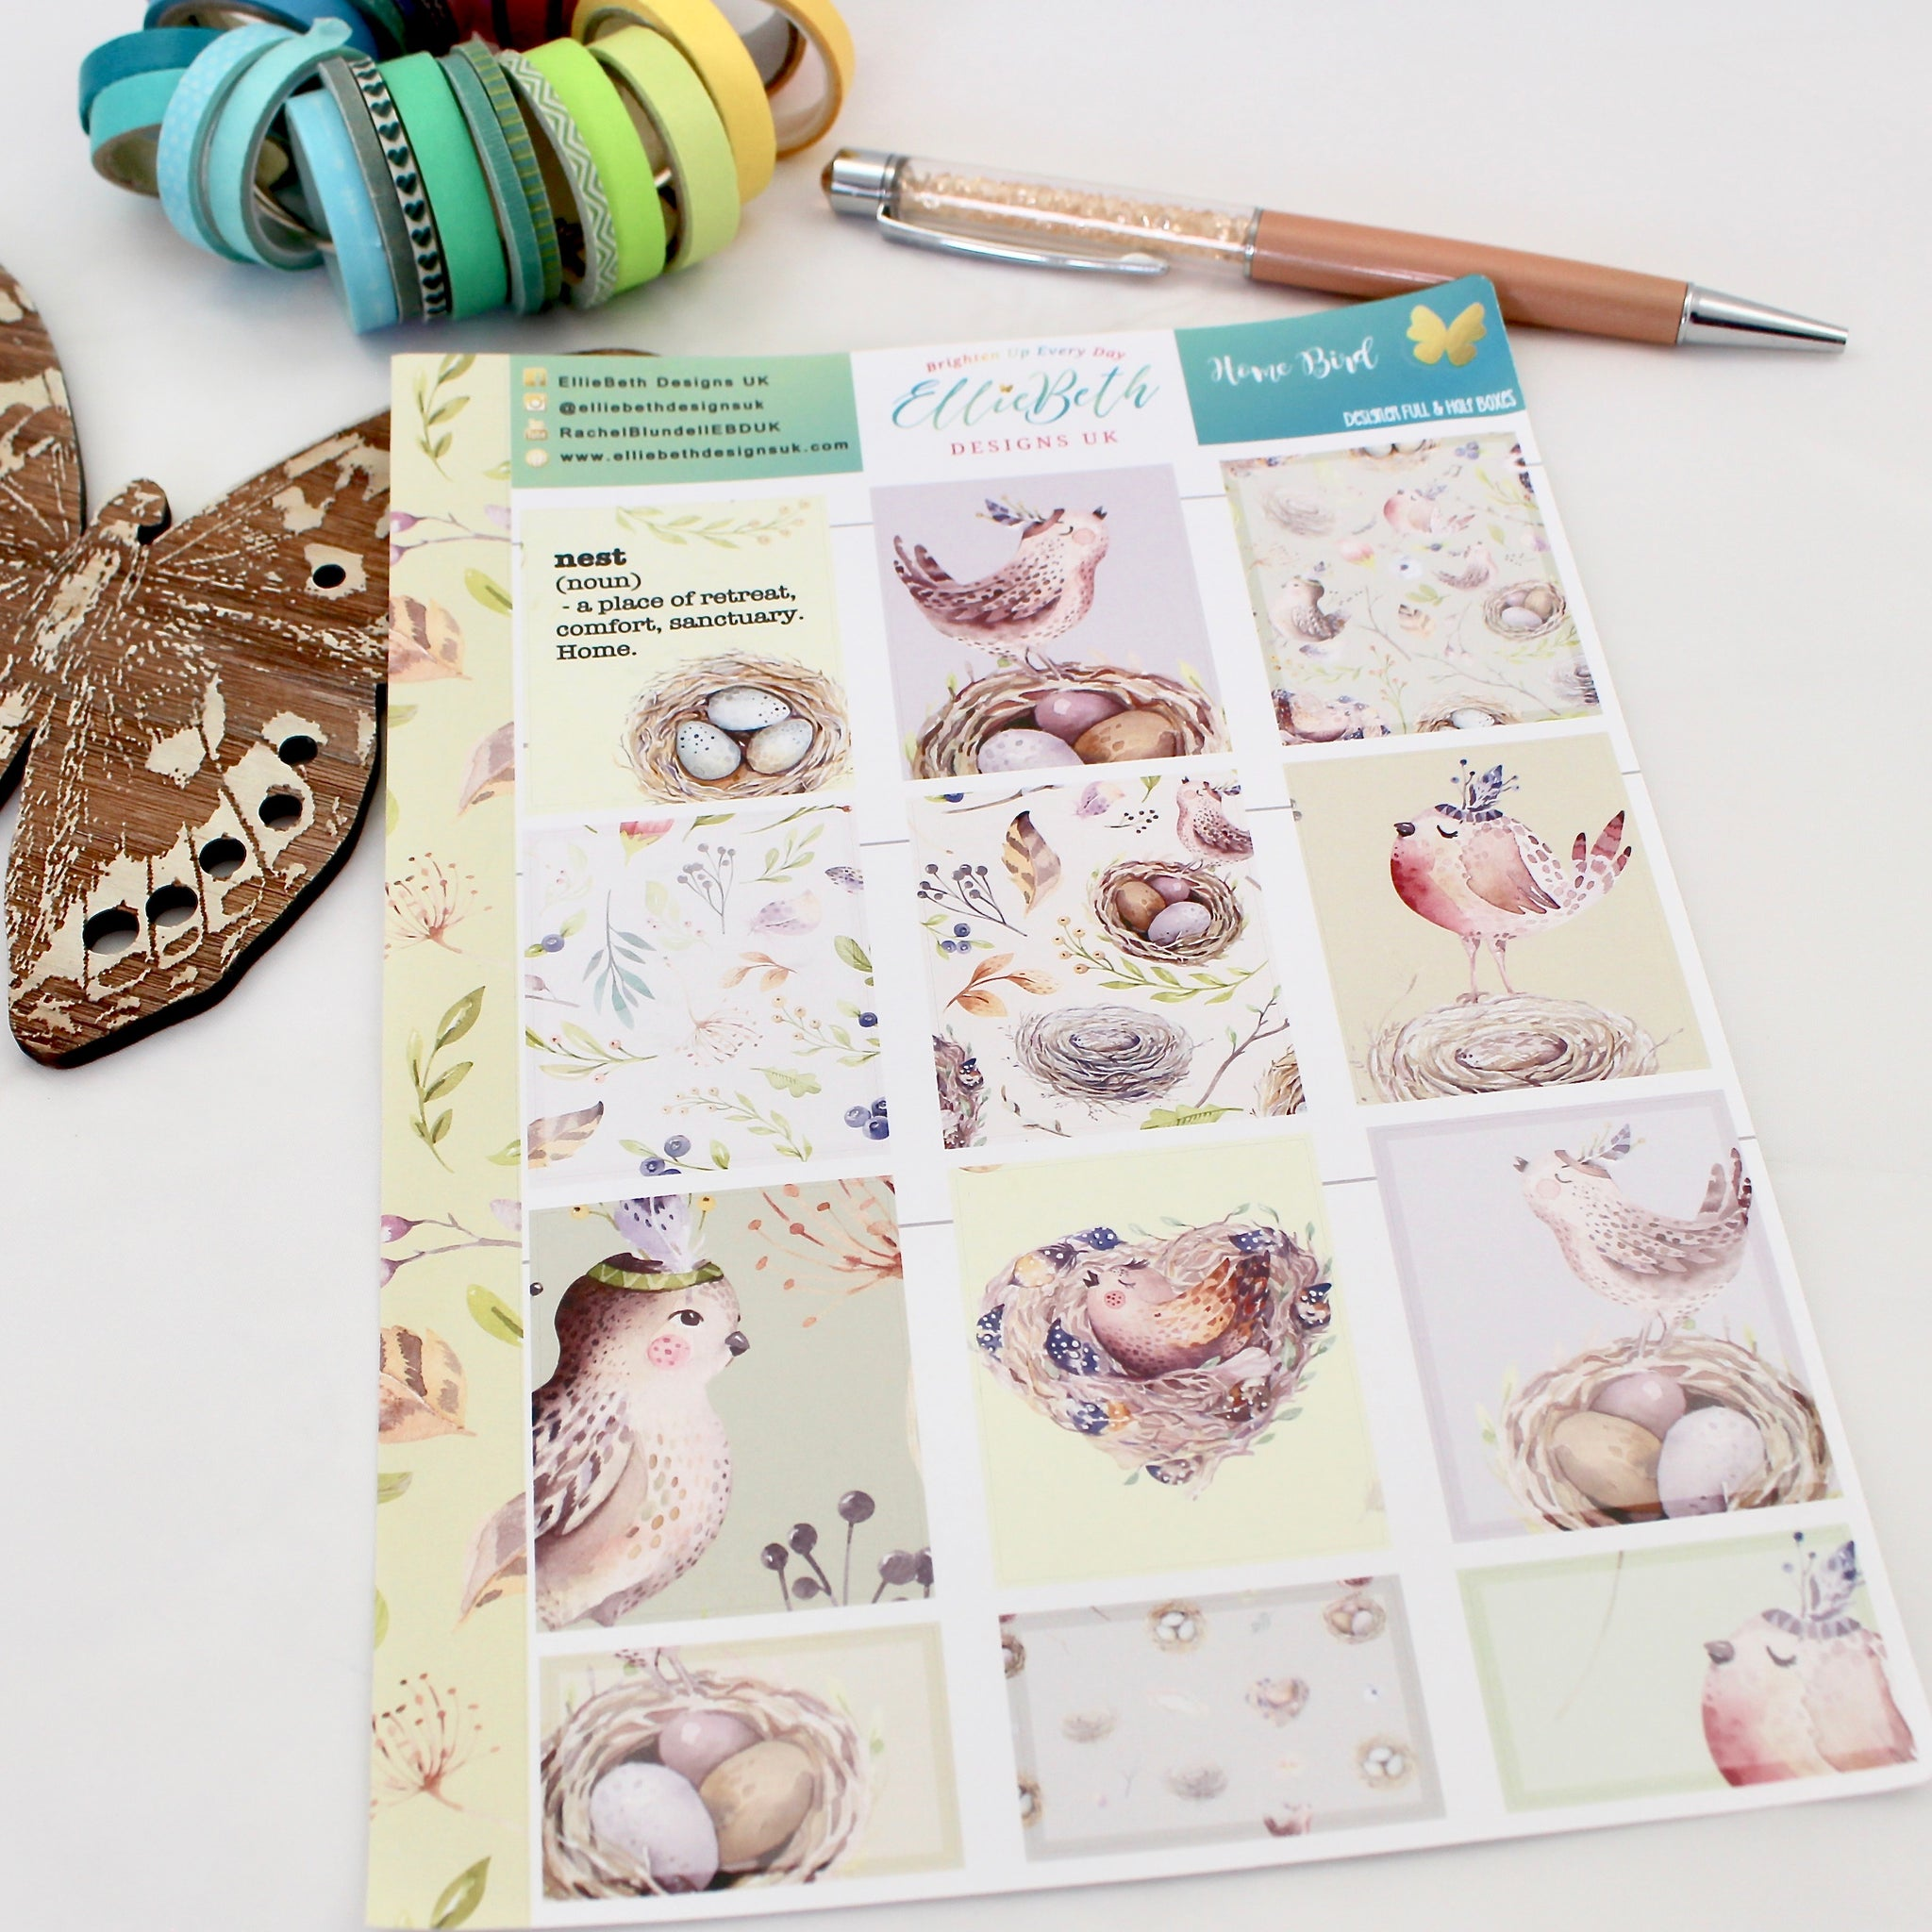 'Home Bird' - Designer Full and Half Boxes Sheet -  A5 binder ready planner stickers - EllieBeth Designs UK